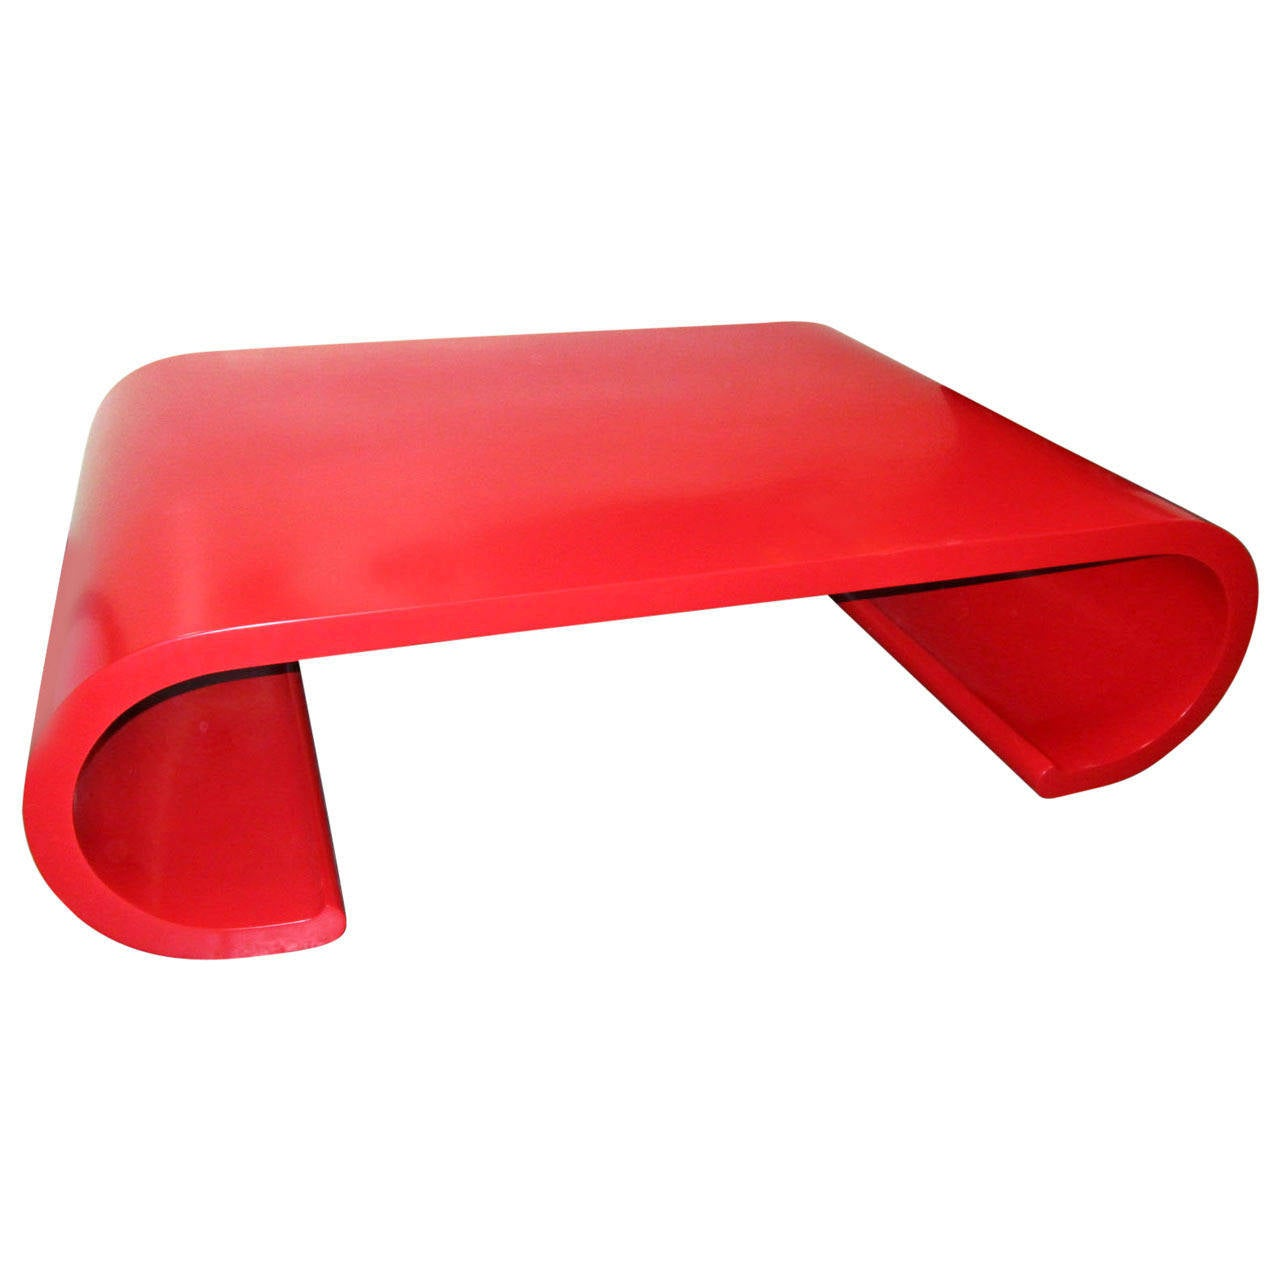 Chic Red Lacquer Scroll Coffee Table In The Manner Of Karl